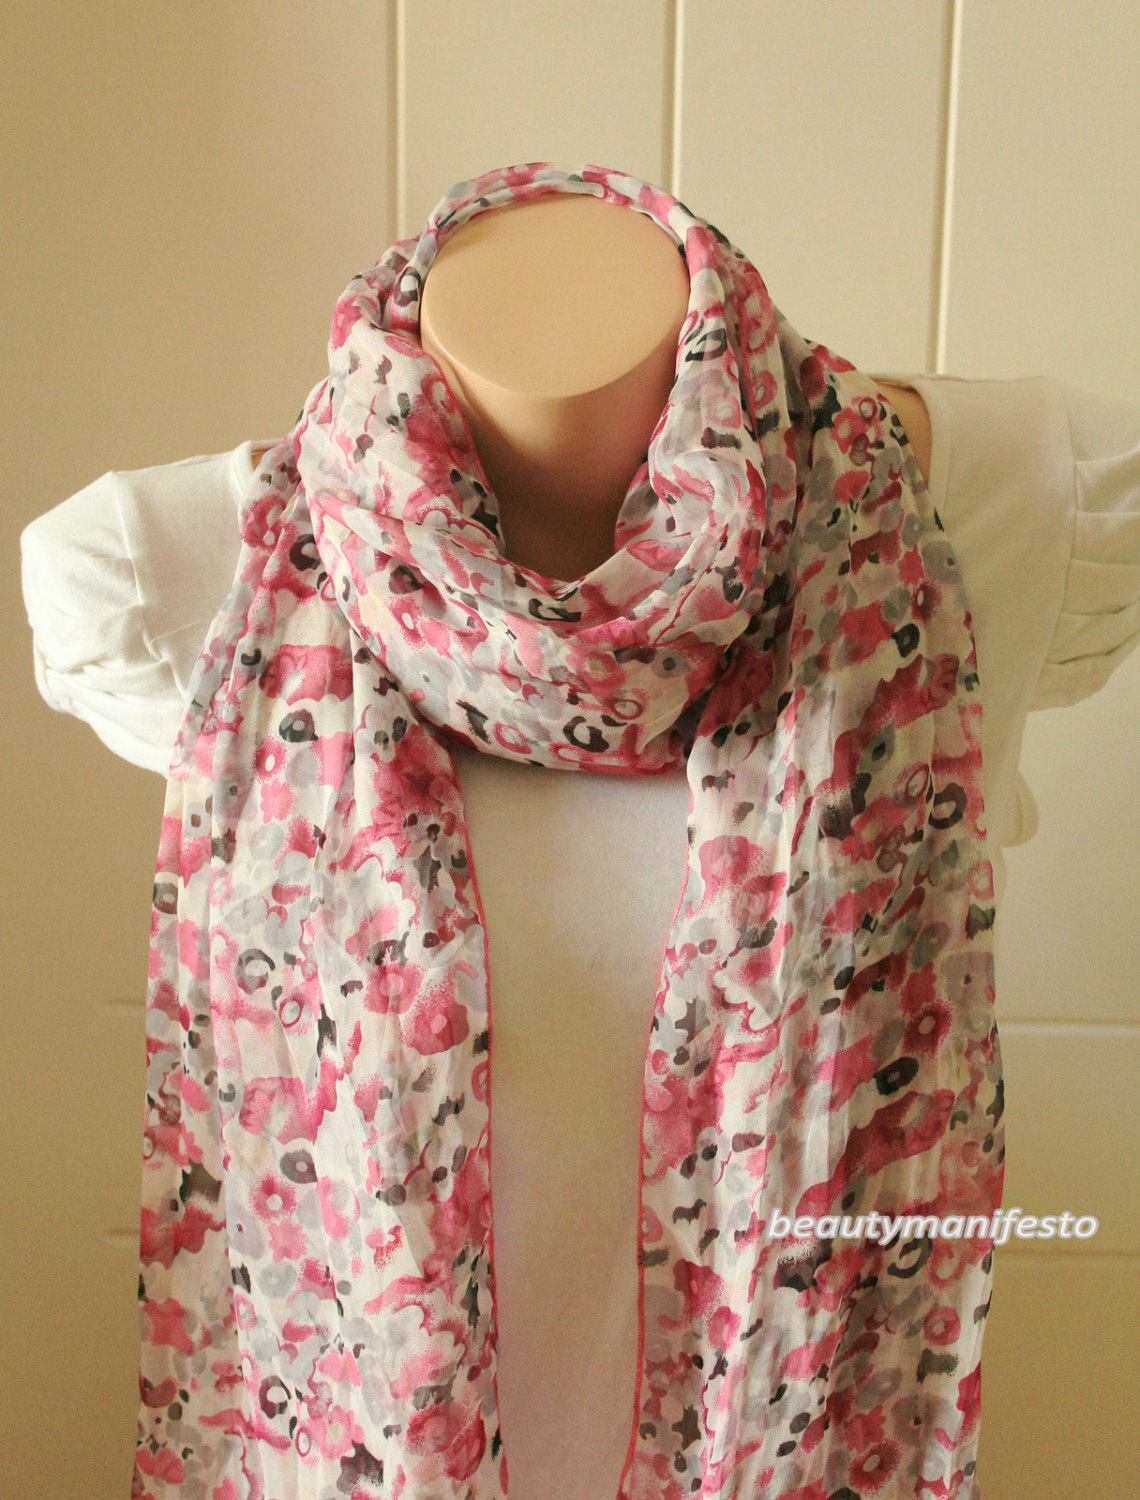 So soft silky floral scarf ,shawl gift ideas for her ruffle scarf , women scarves mothers day gifts,fashion accessories.